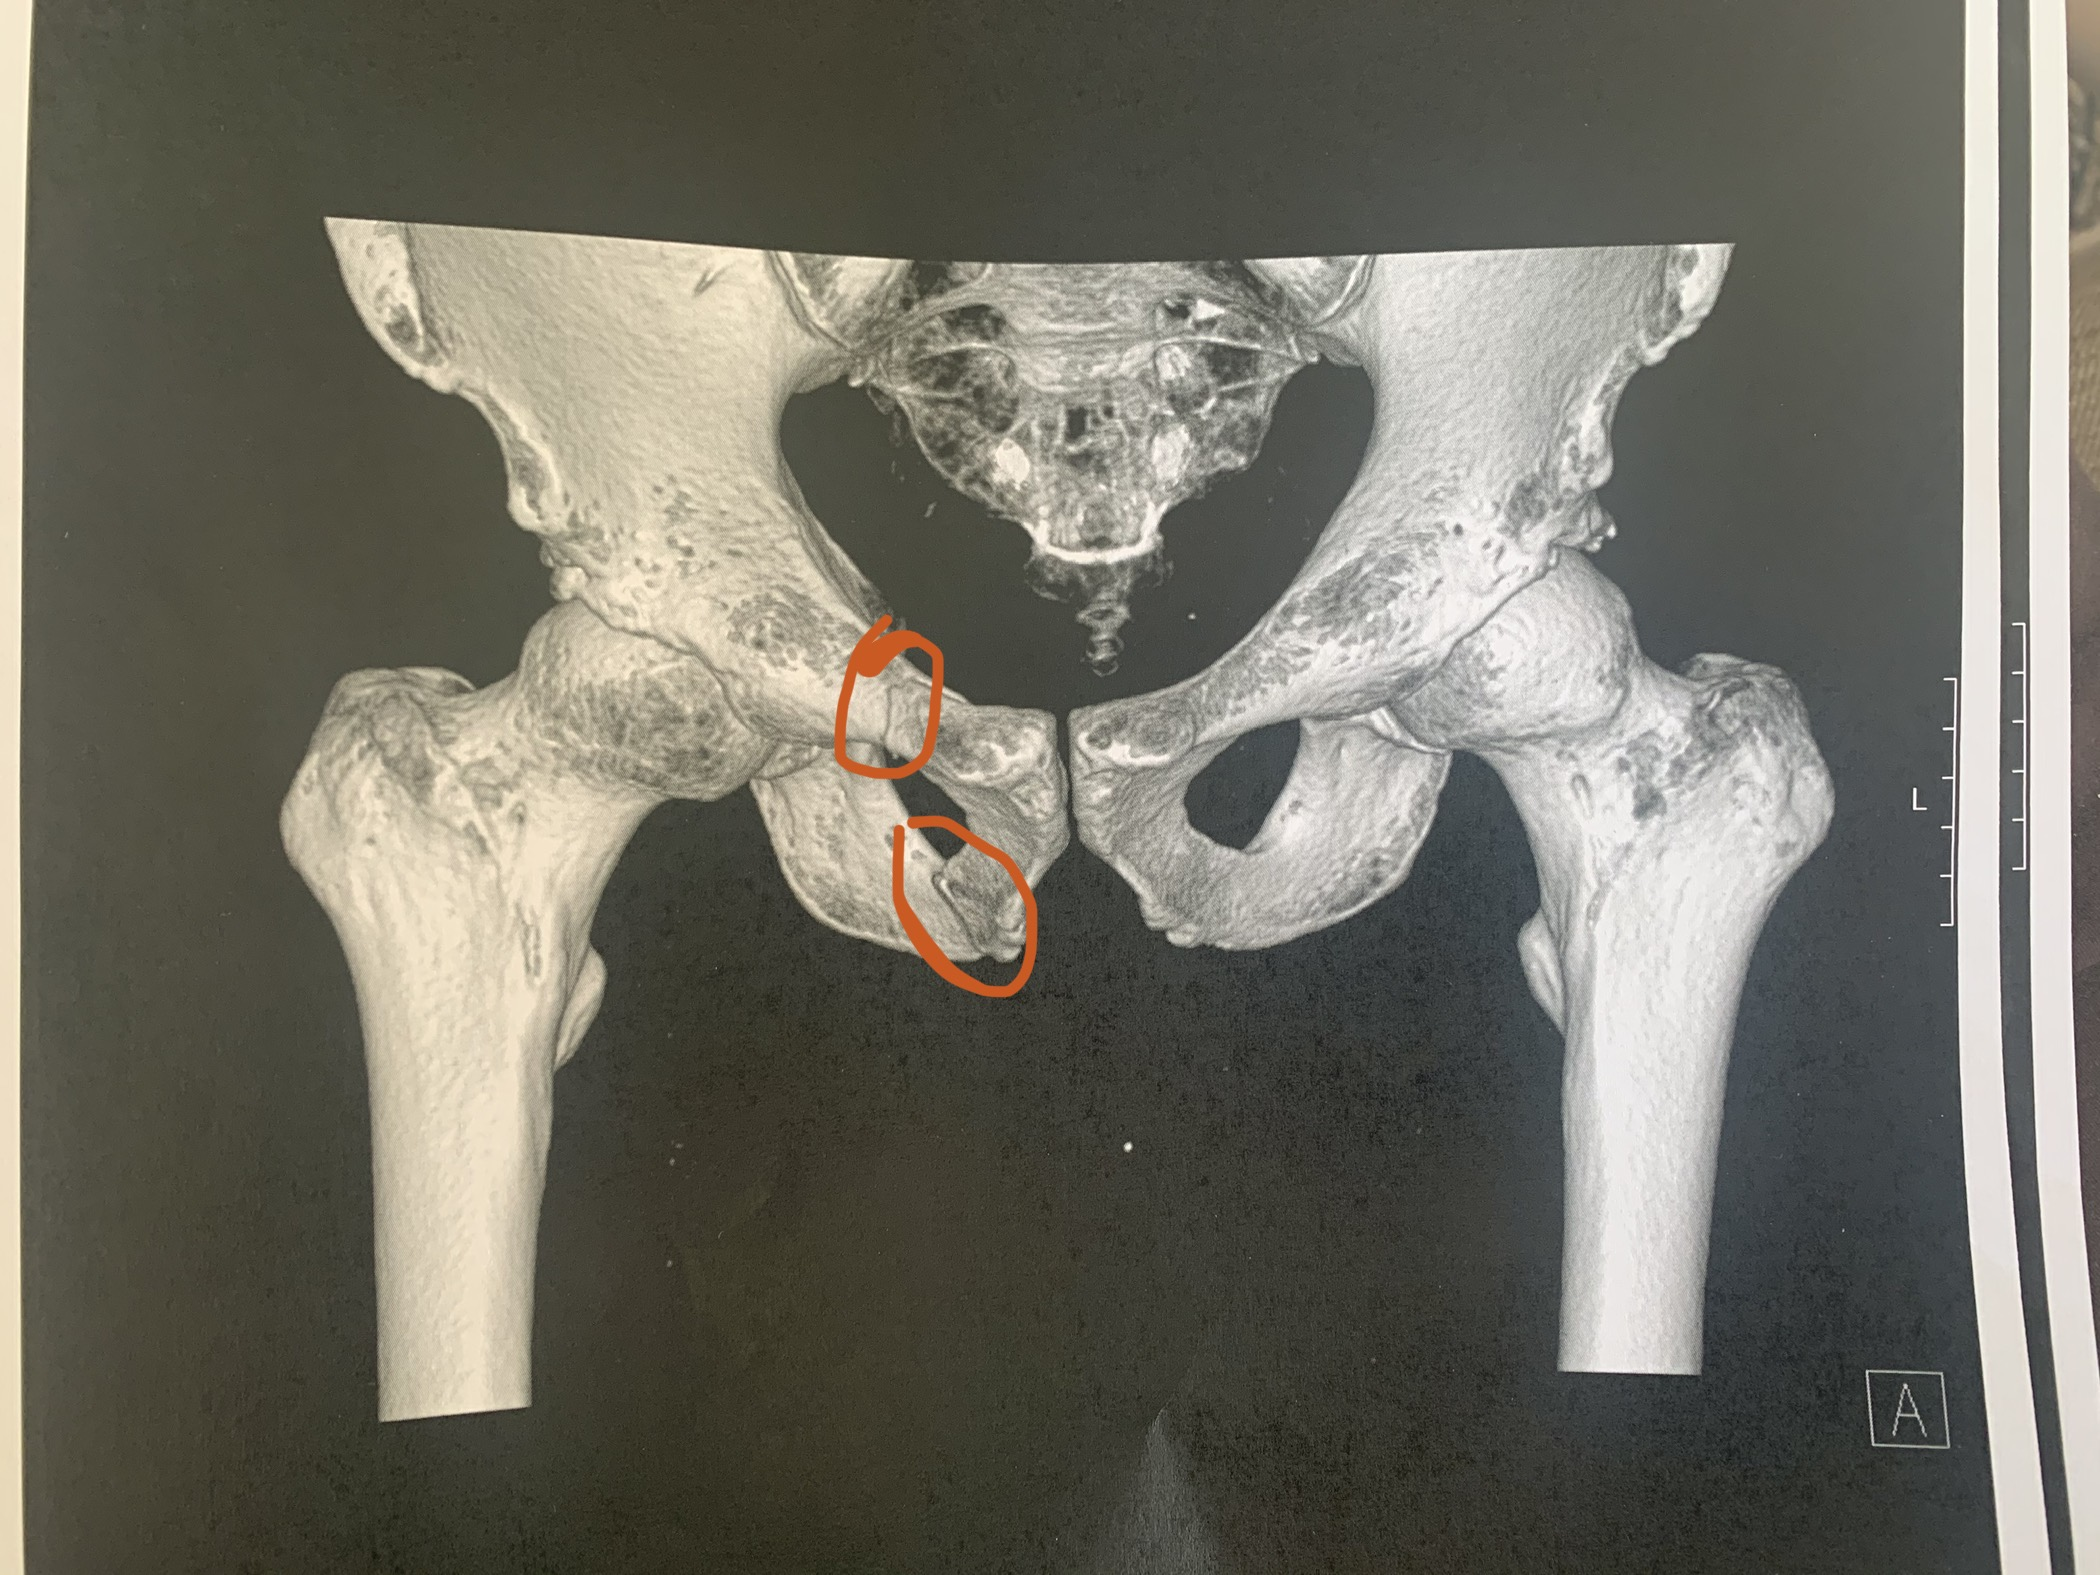 CT Scan showing the mildly/moderately displaced fractures of my pelvis